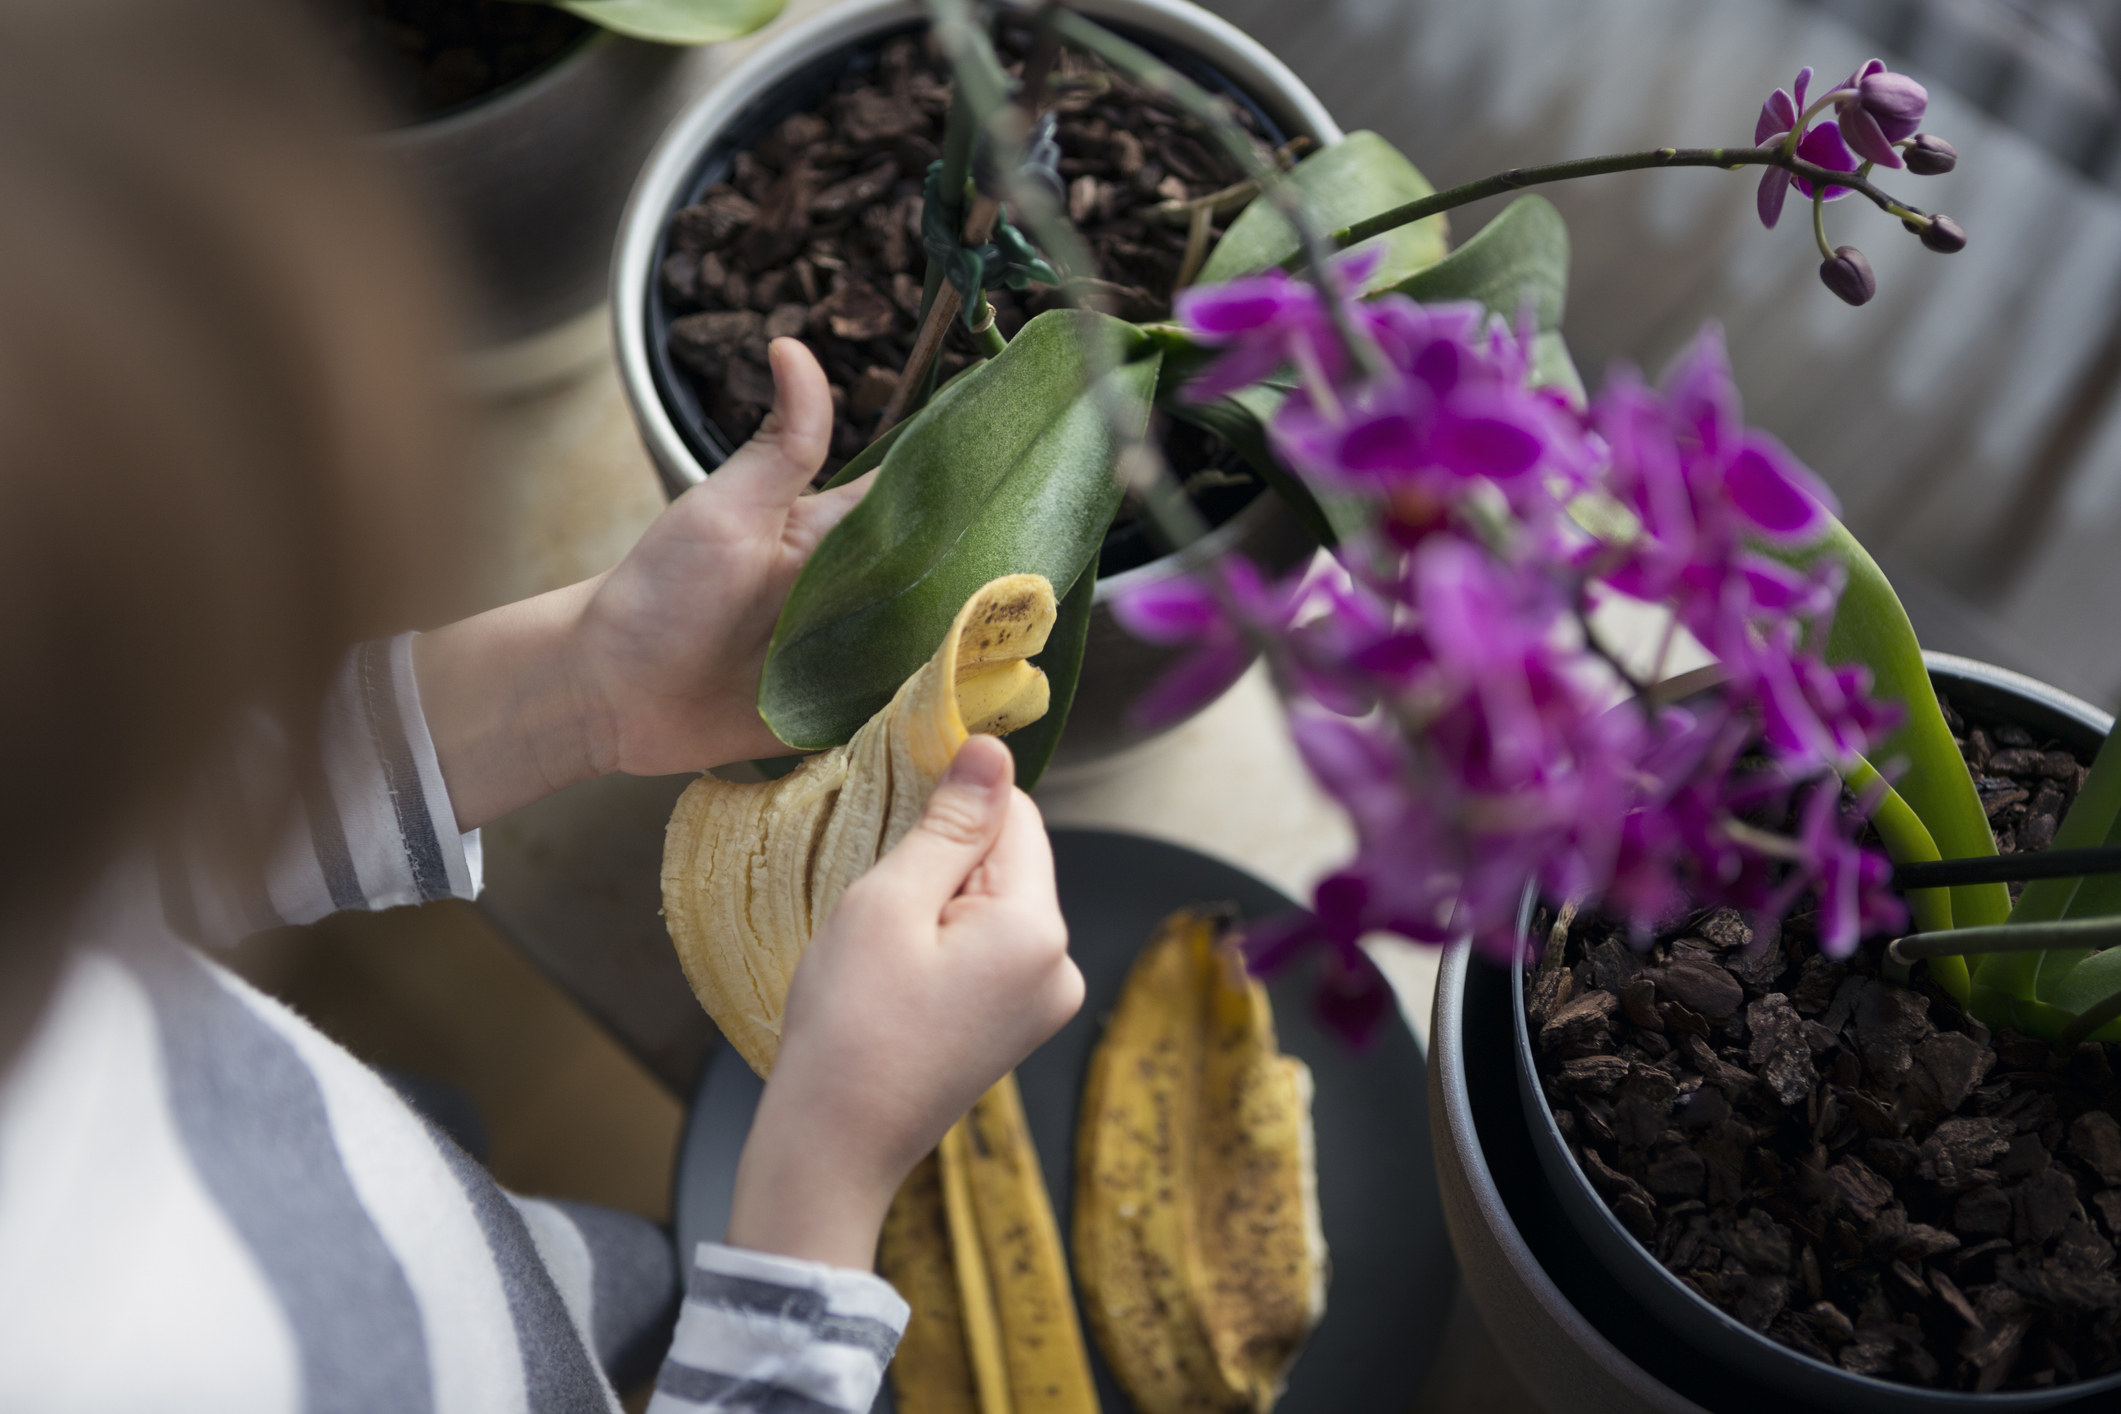 model wipes down orchid leaf with banana peel